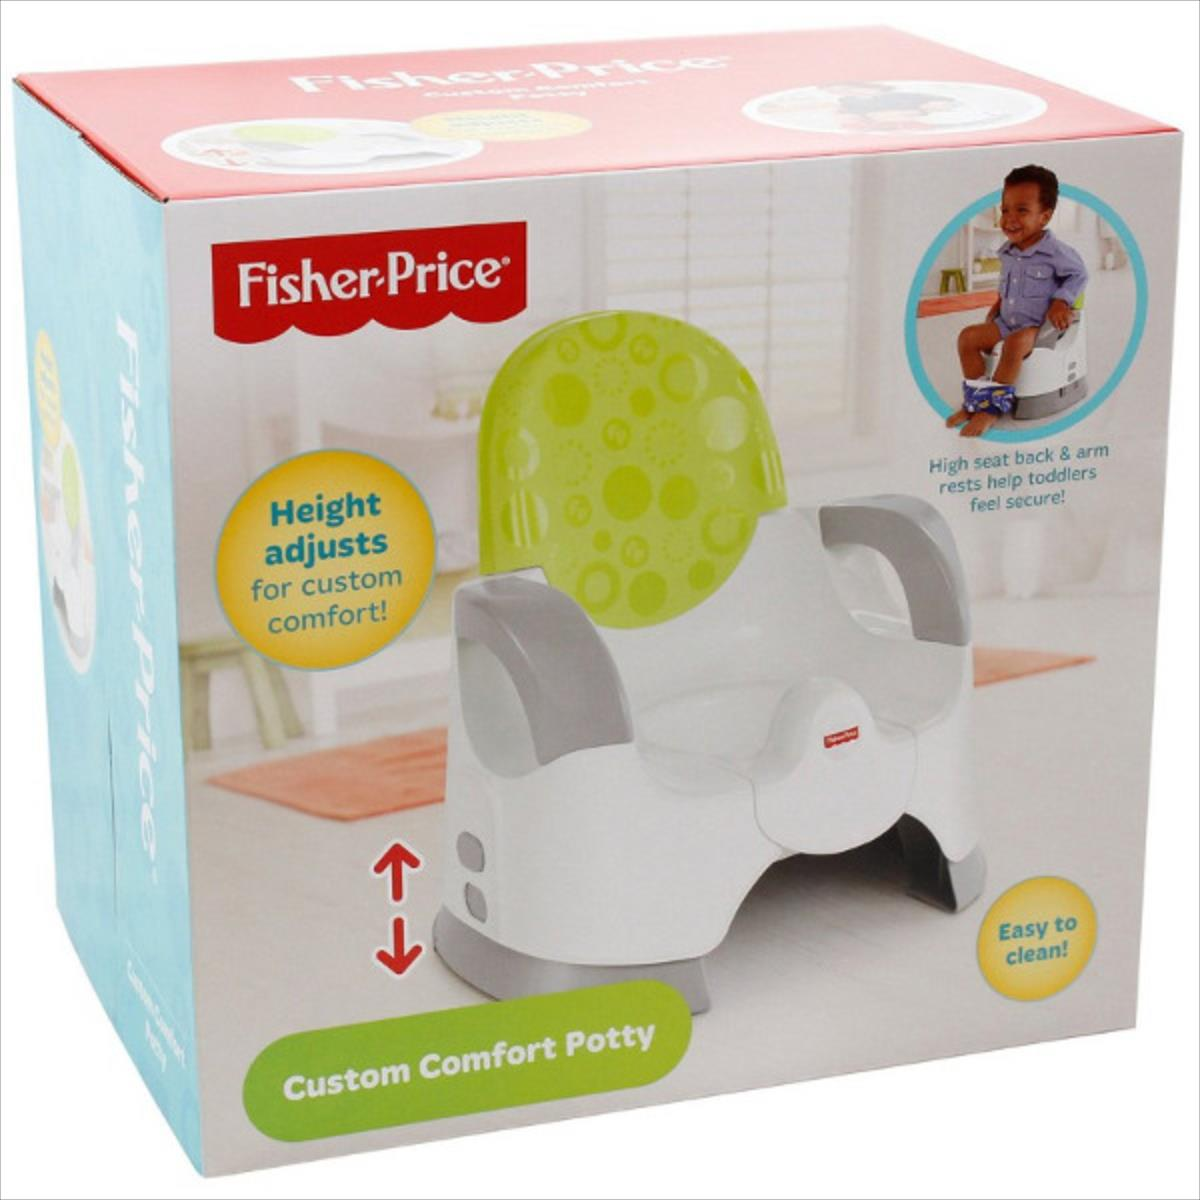 Fisher Price FISHER Green - CBV06